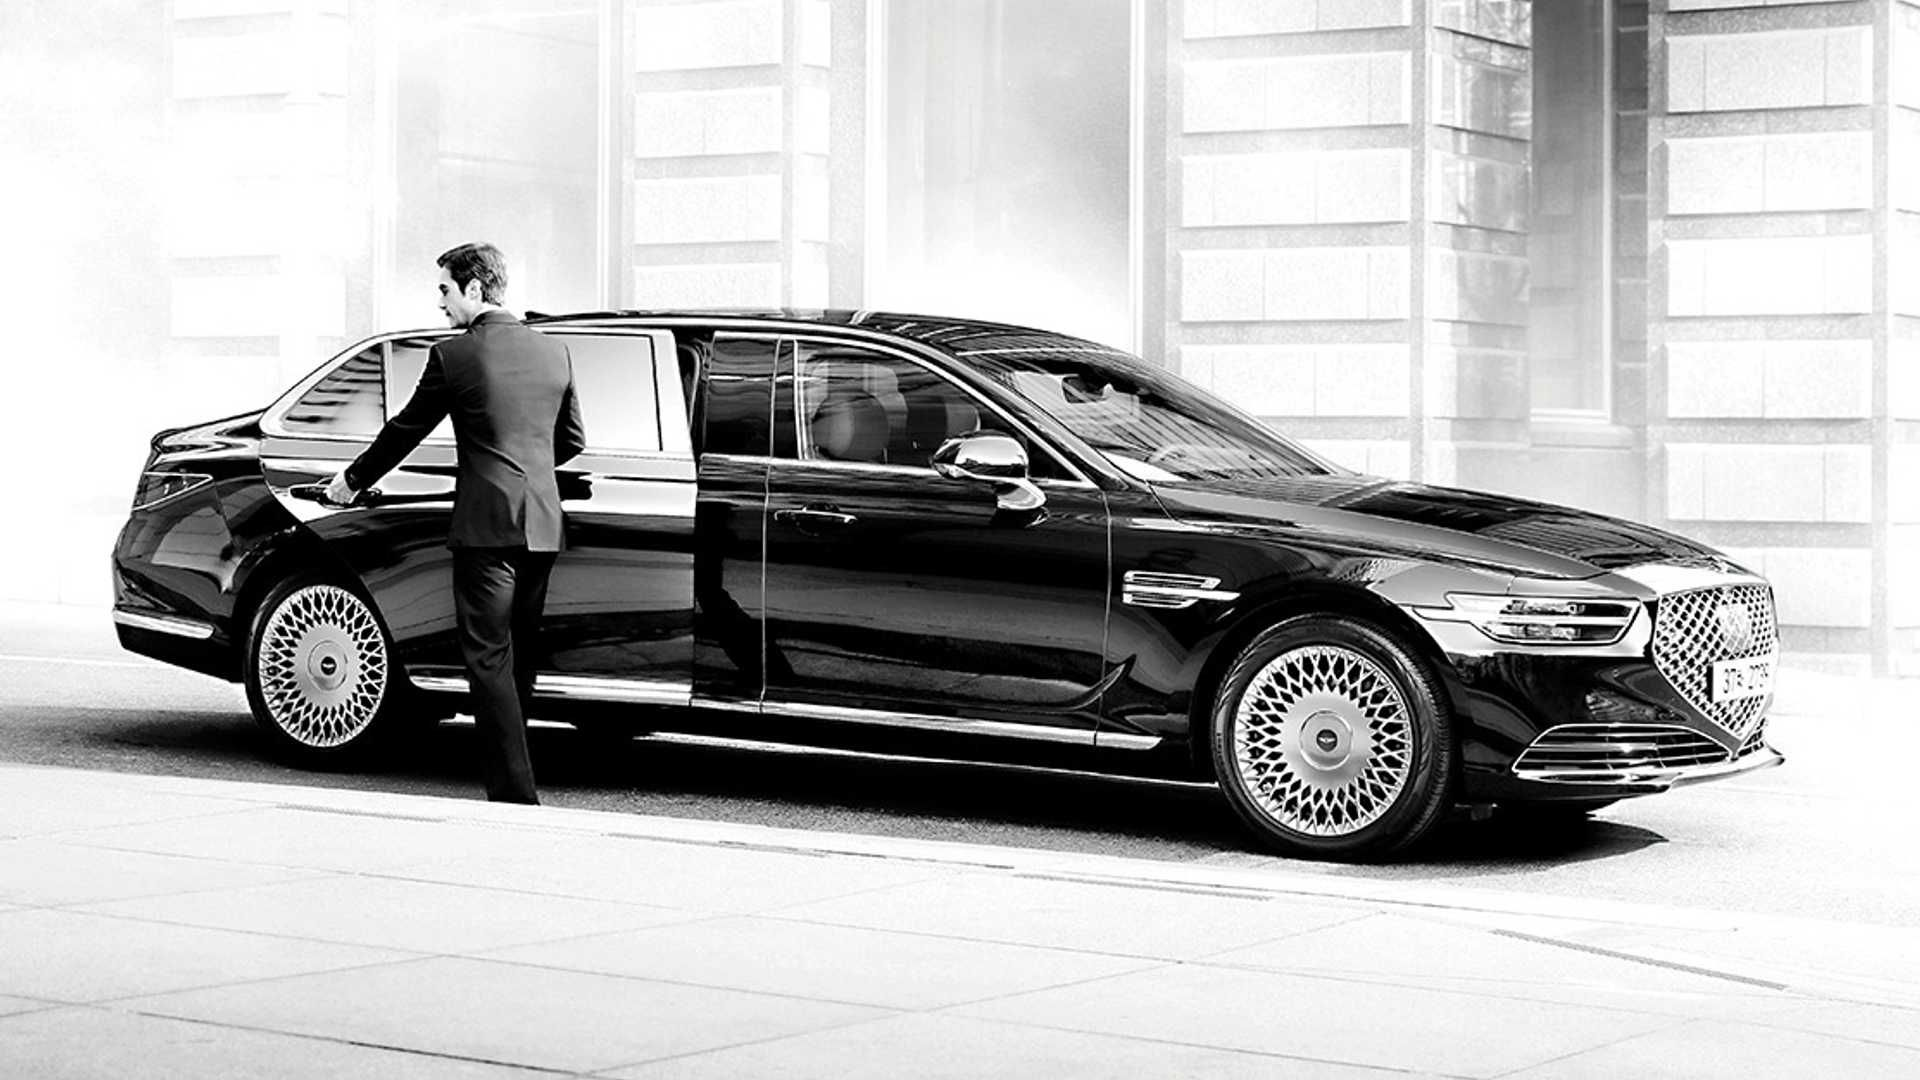 Genesis G90 Limousine Is Korea S Answer To Maybach Limousine Maybach Genesis